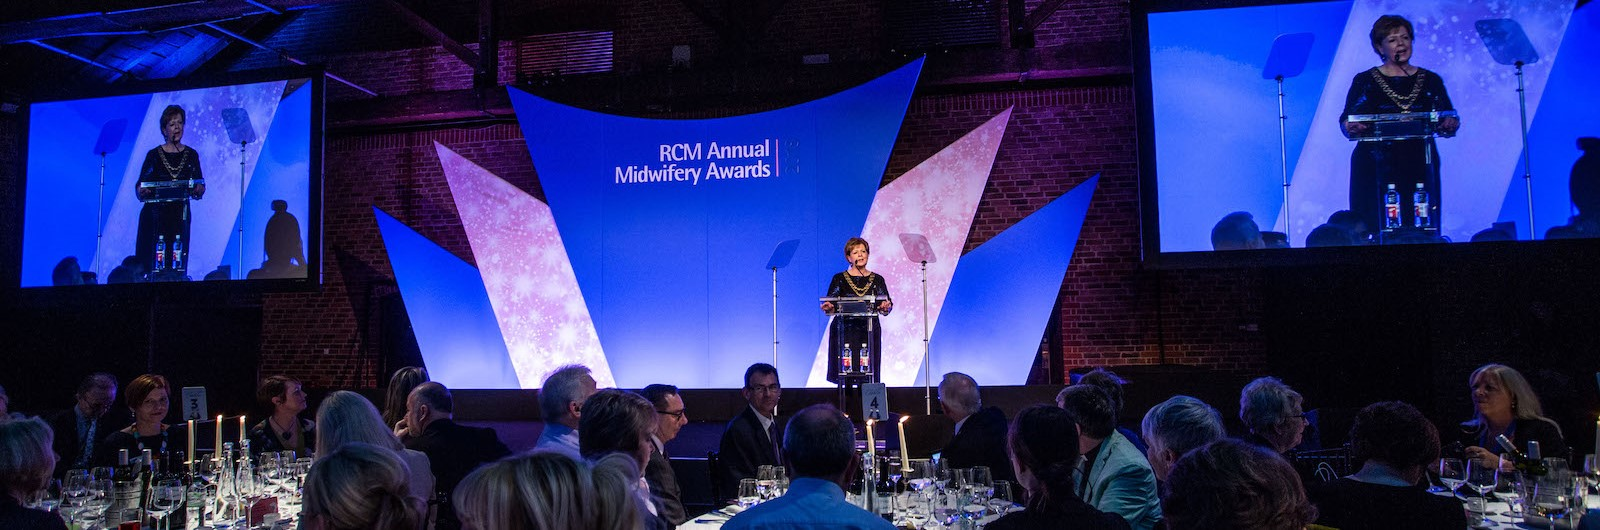 RCM President speaking at the RCM Annual Midwifery Awards 2018